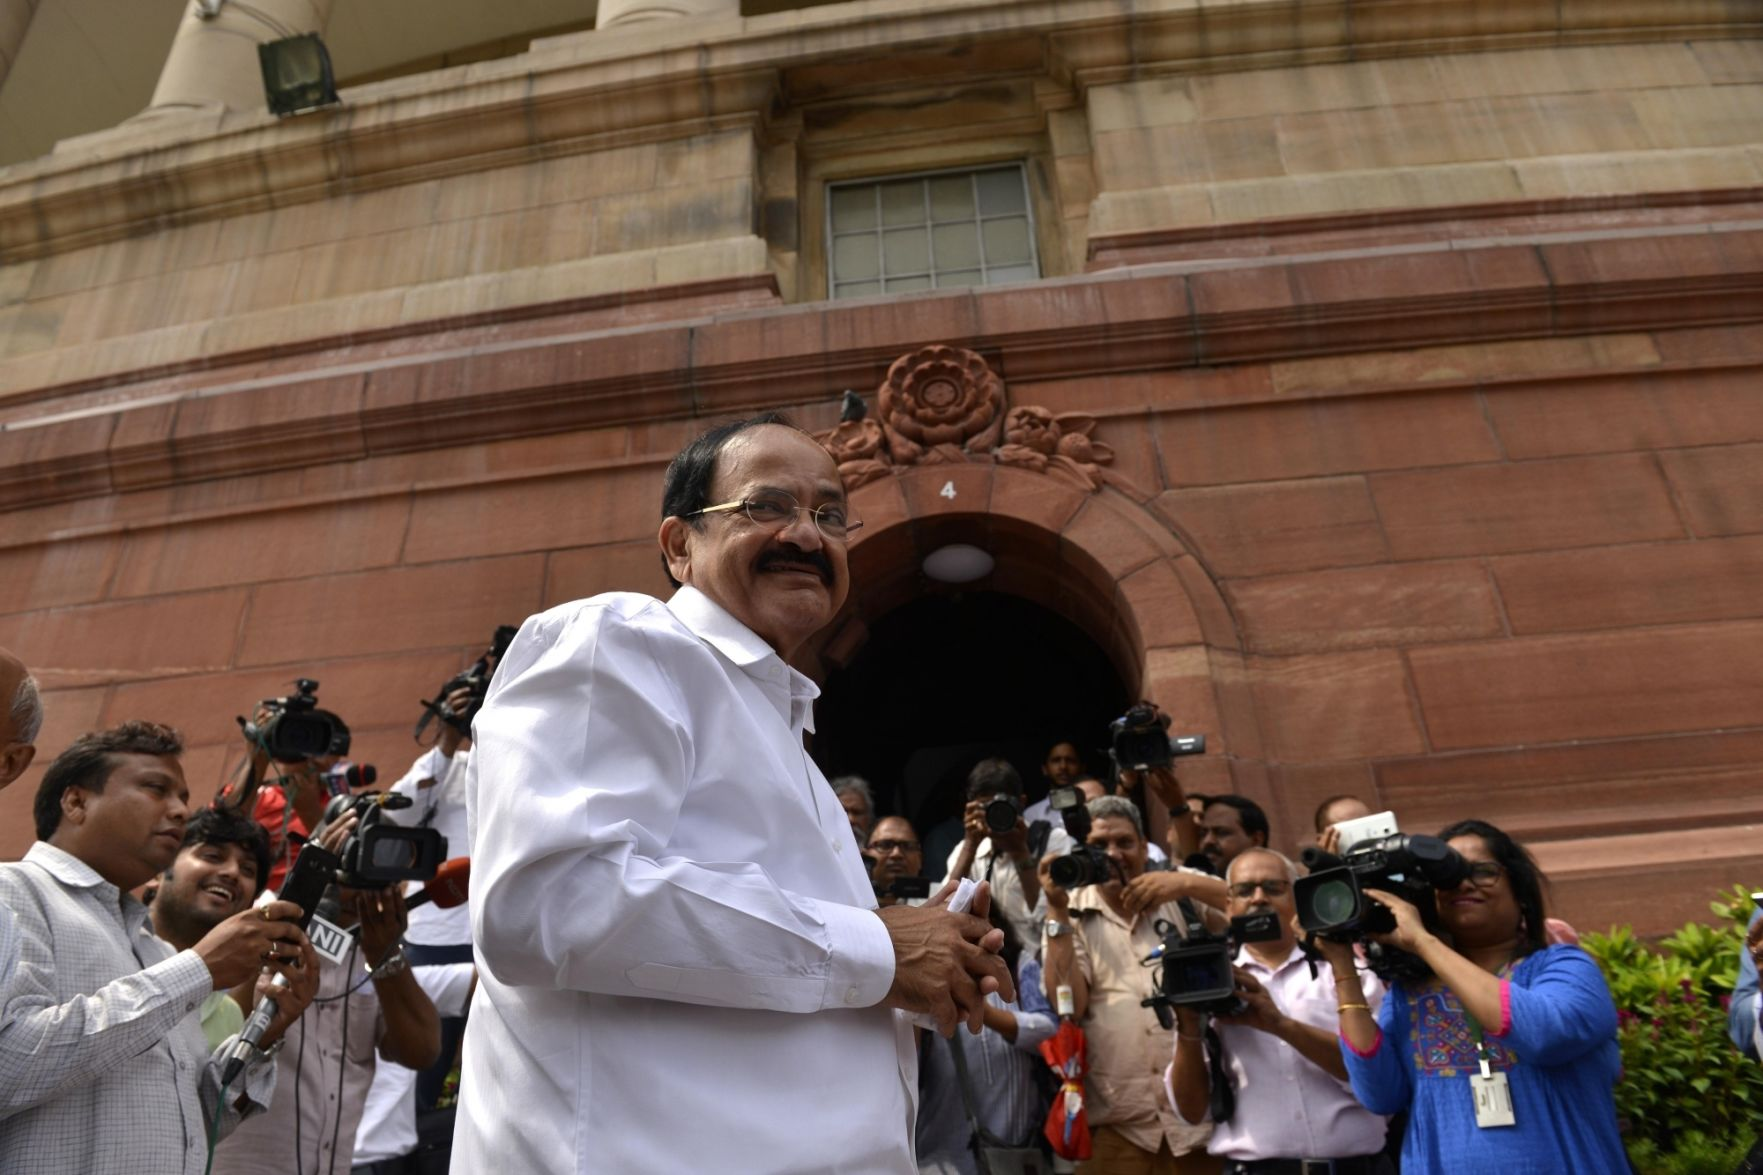 Venkaiah Naidu elected as next Vice President of India